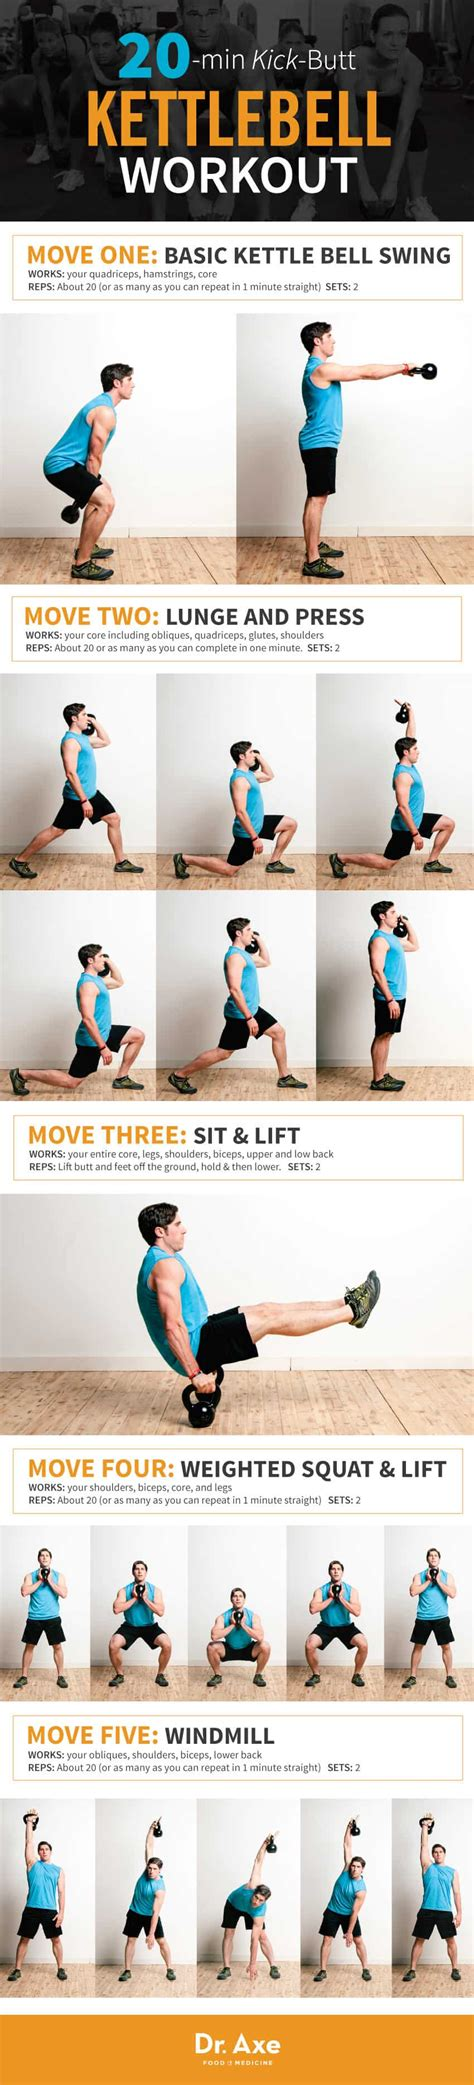 kettlebell workout workouts minute butt min exercises routine support kick